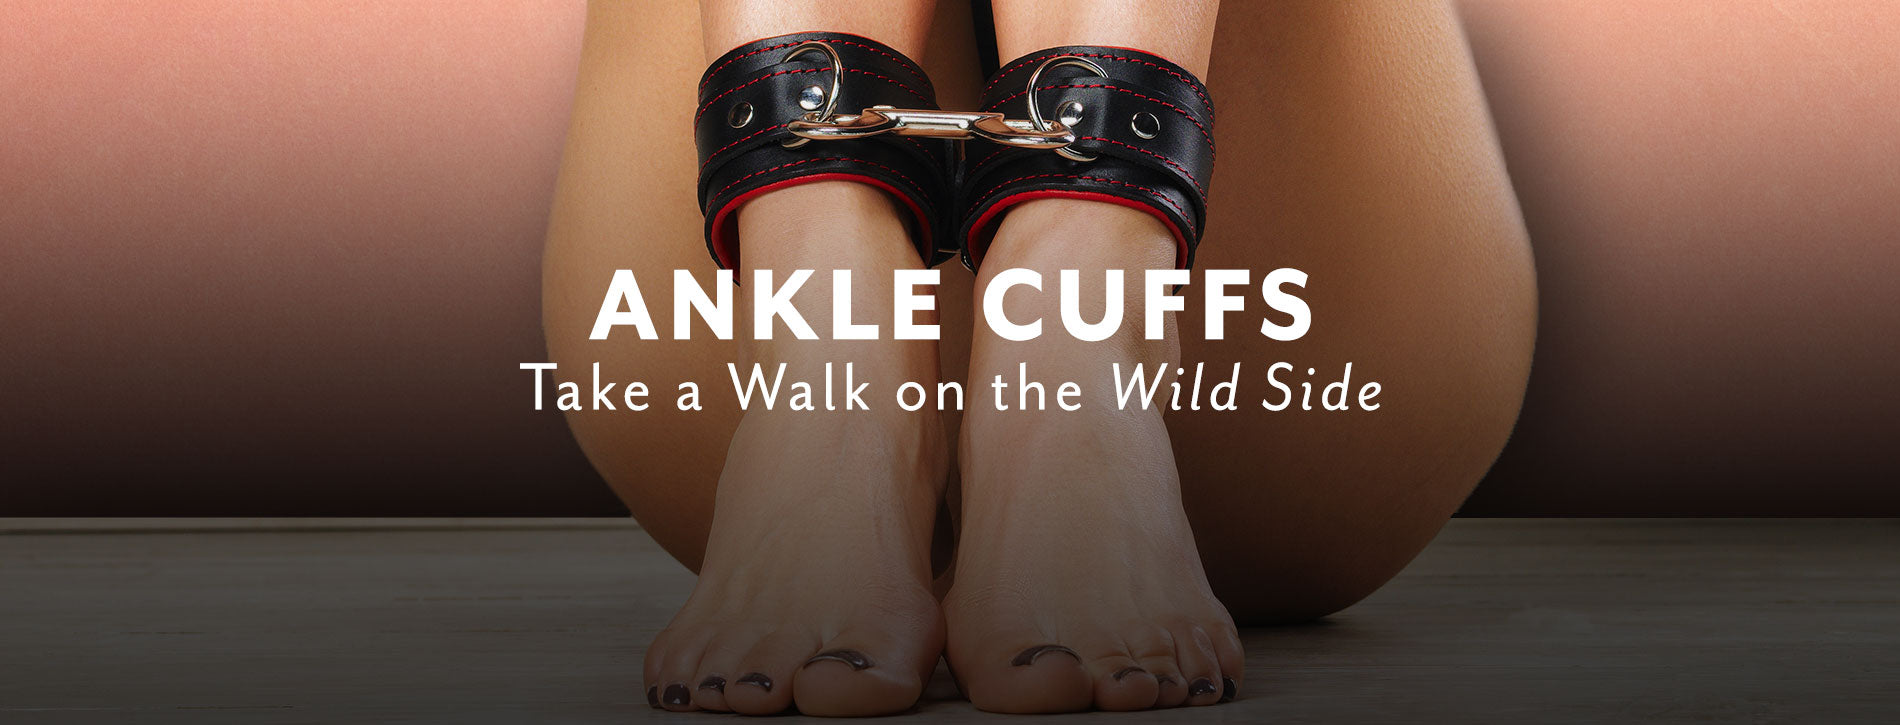 Luxury High-End Leather Ankle Cuffs